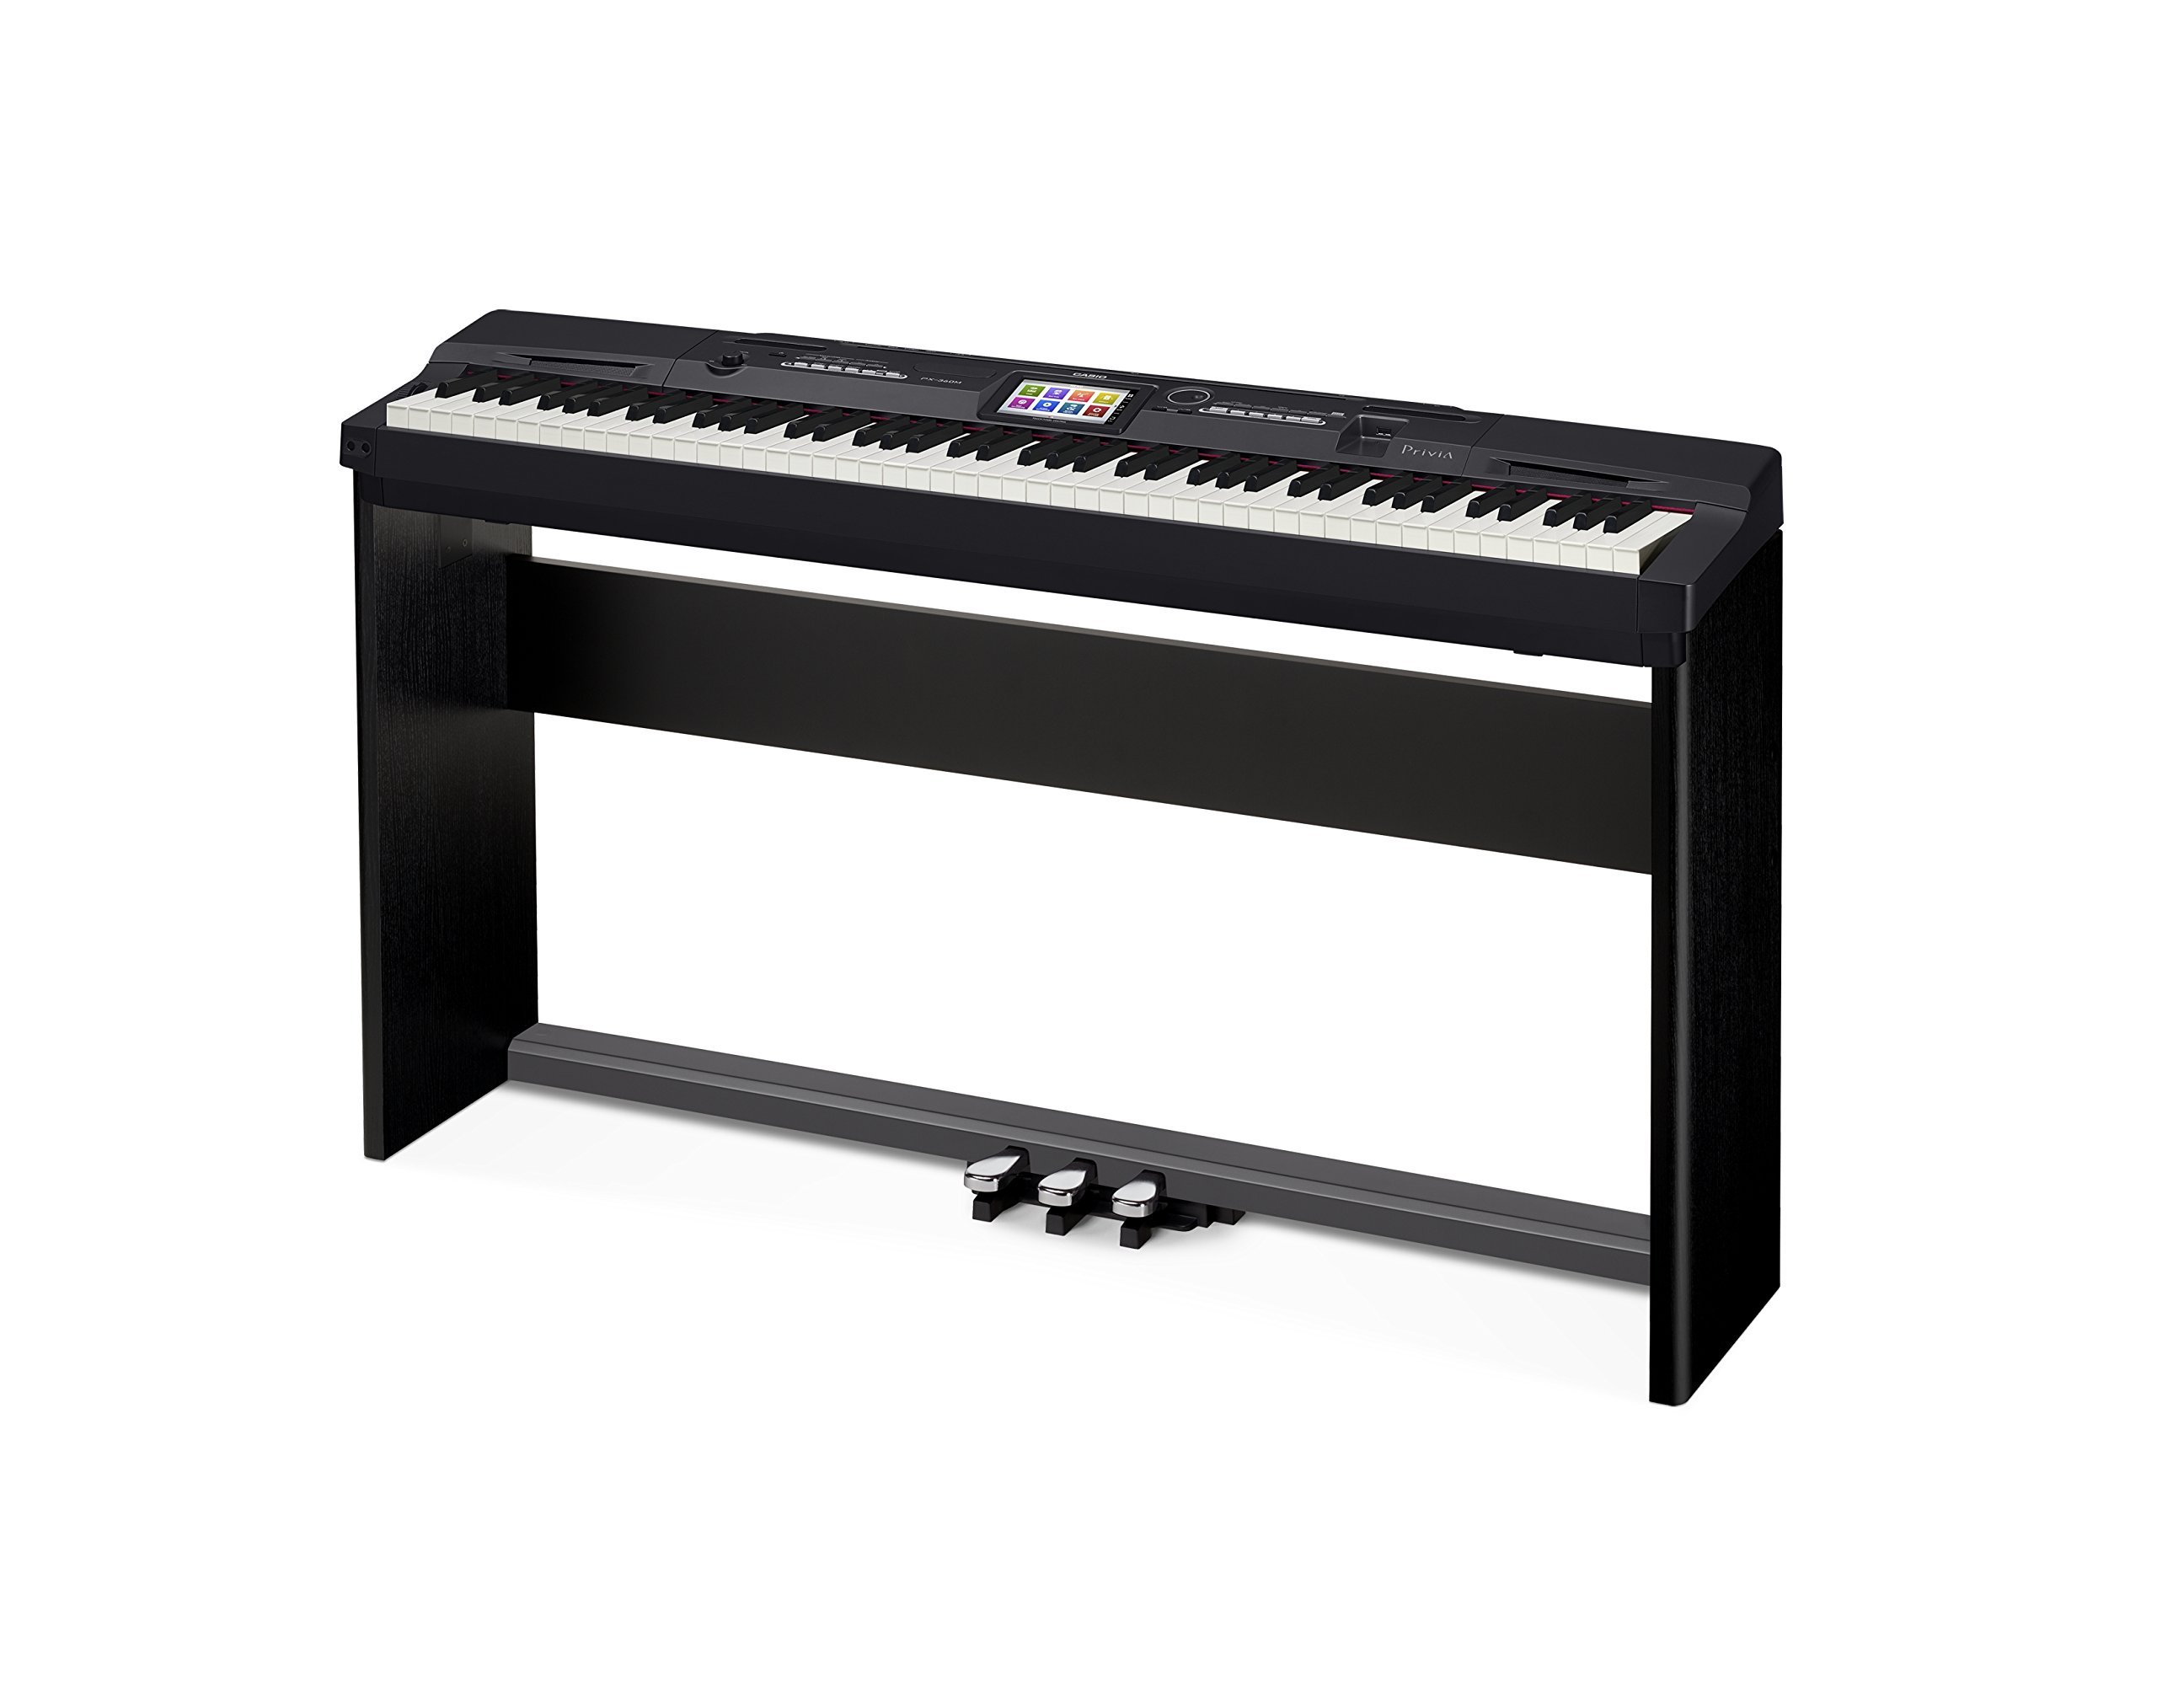 Casio Privia PX-360 Digital Piano - Black Bundle with CS-67 Stand, SP-33 Pedal, Furniture Bench, Instructional Book, Austin Bazaar Instructional DVD, and Polishing Cloth by Casio (Image #5)